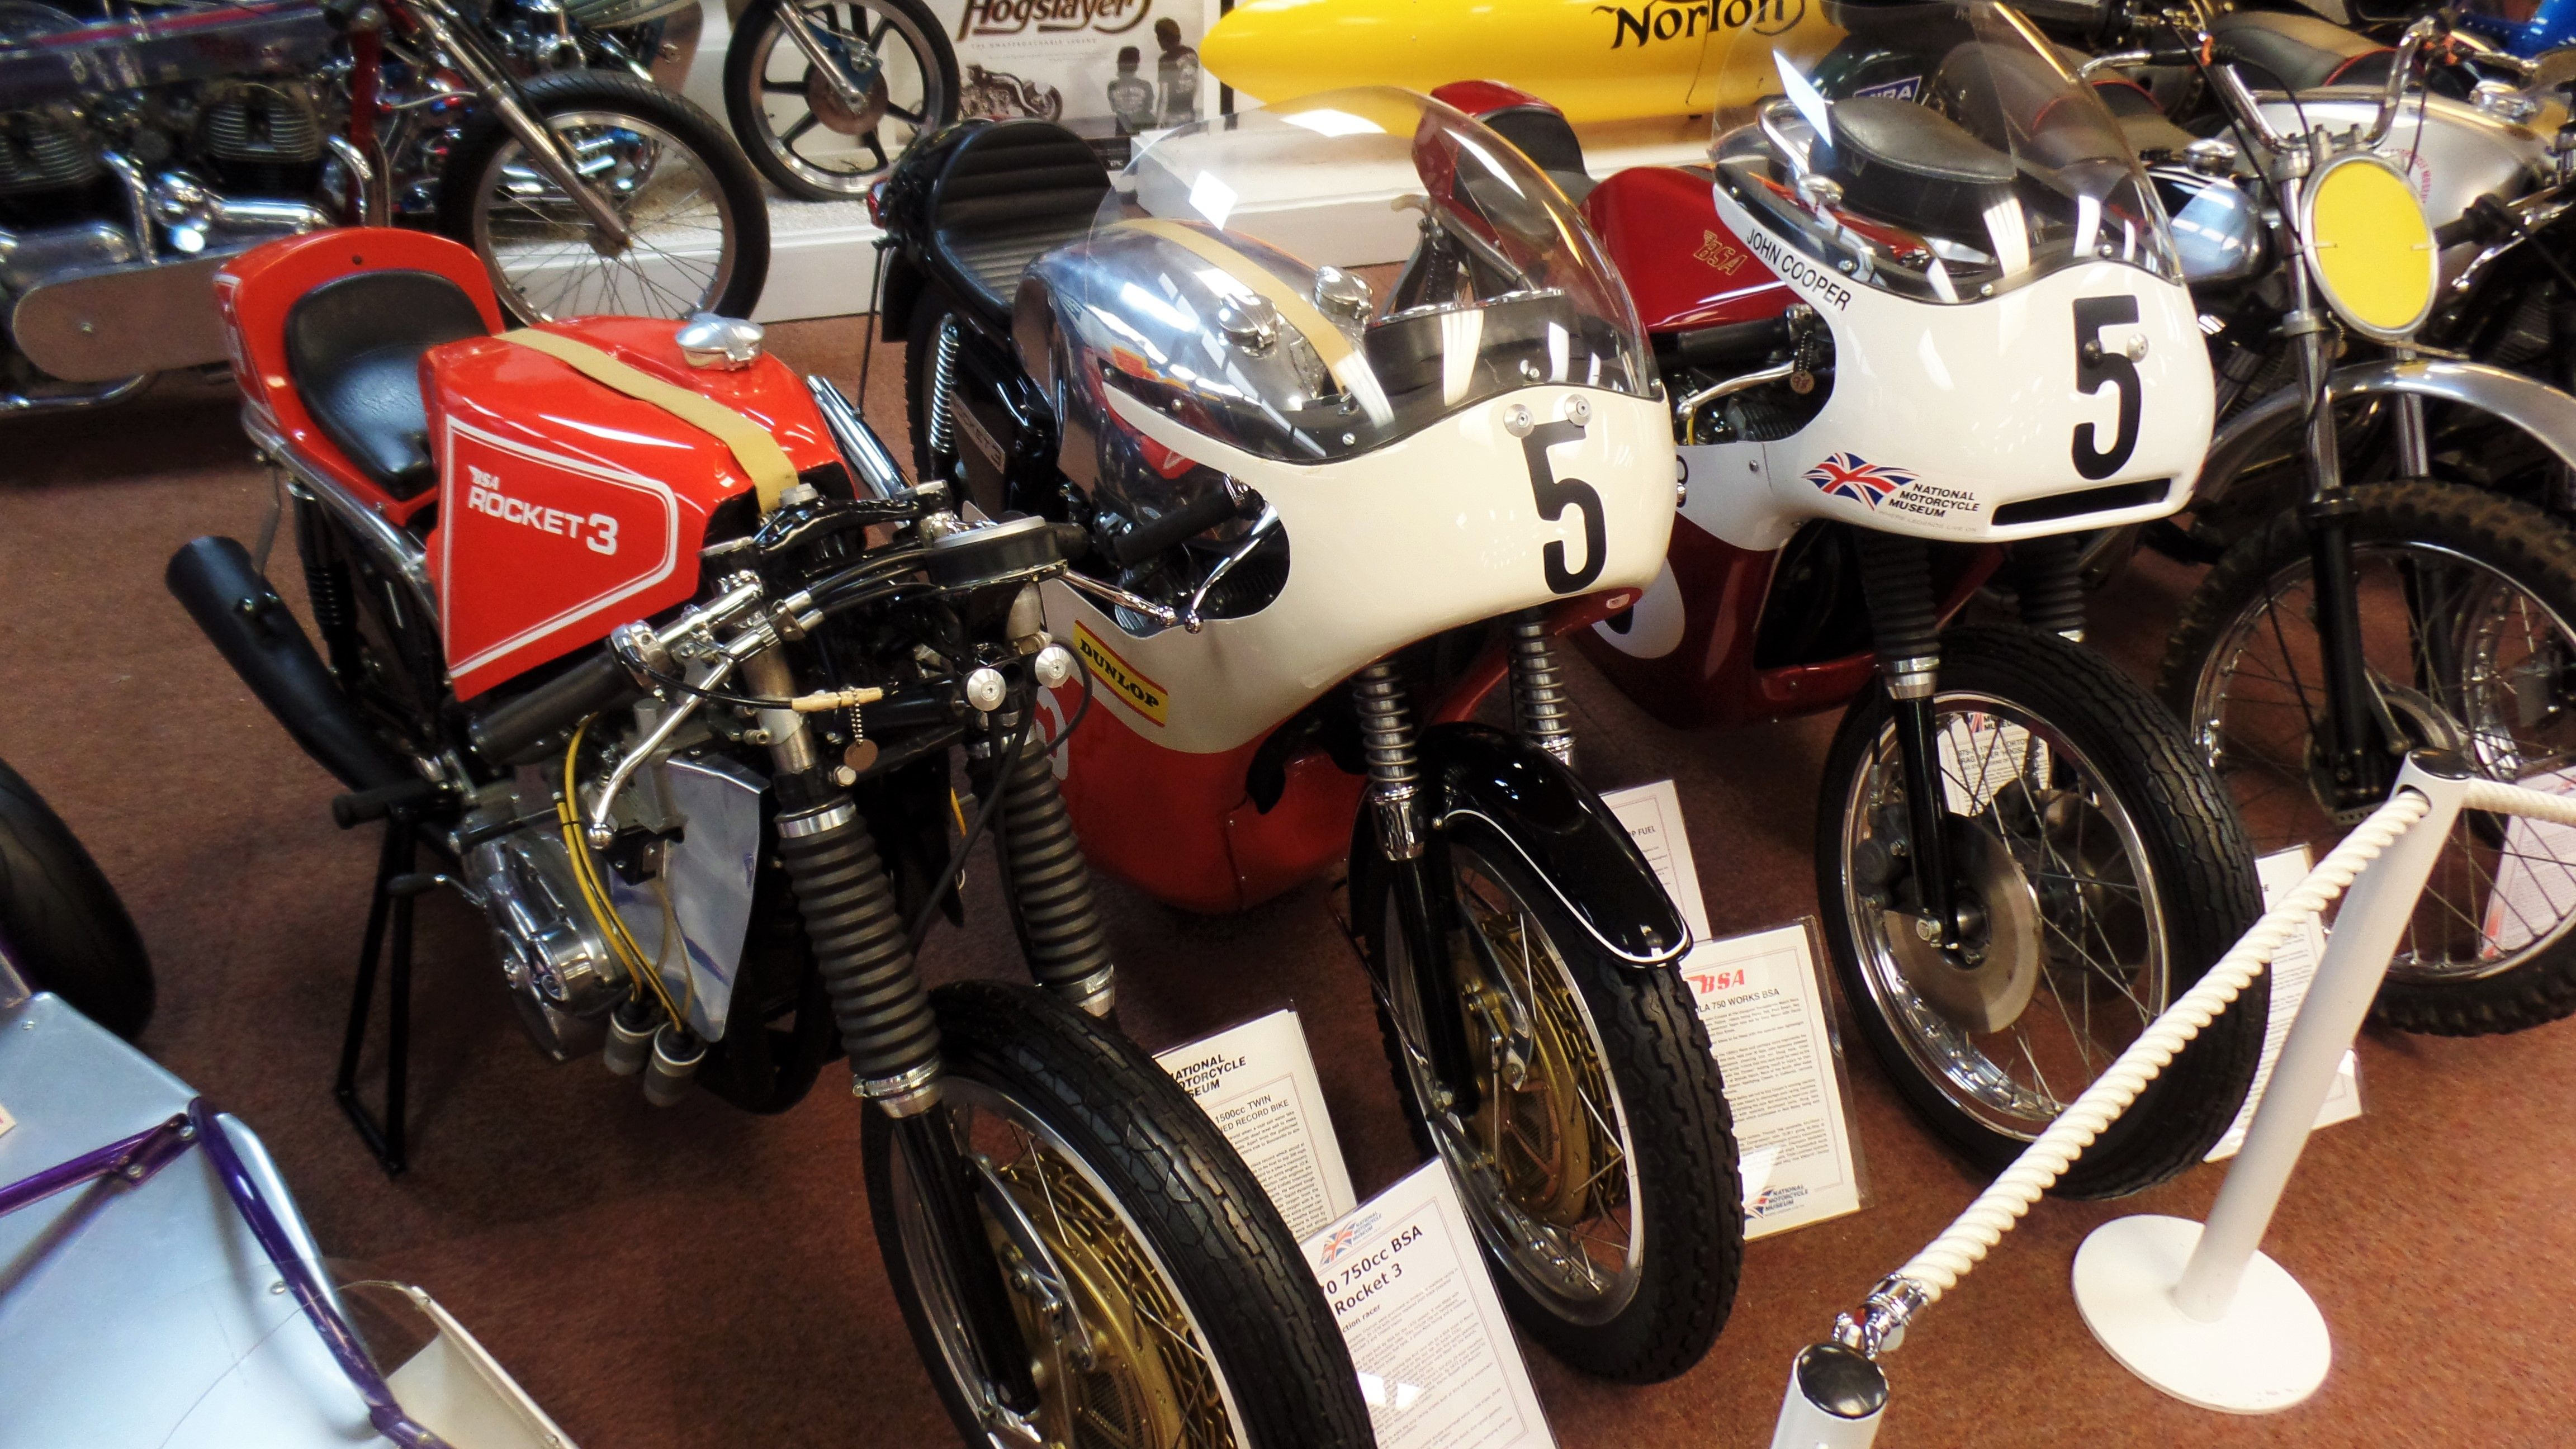 Bsa Racers National Motorcycle Museum England Motorcycle Museum Classic Motorcycles Motorcycle